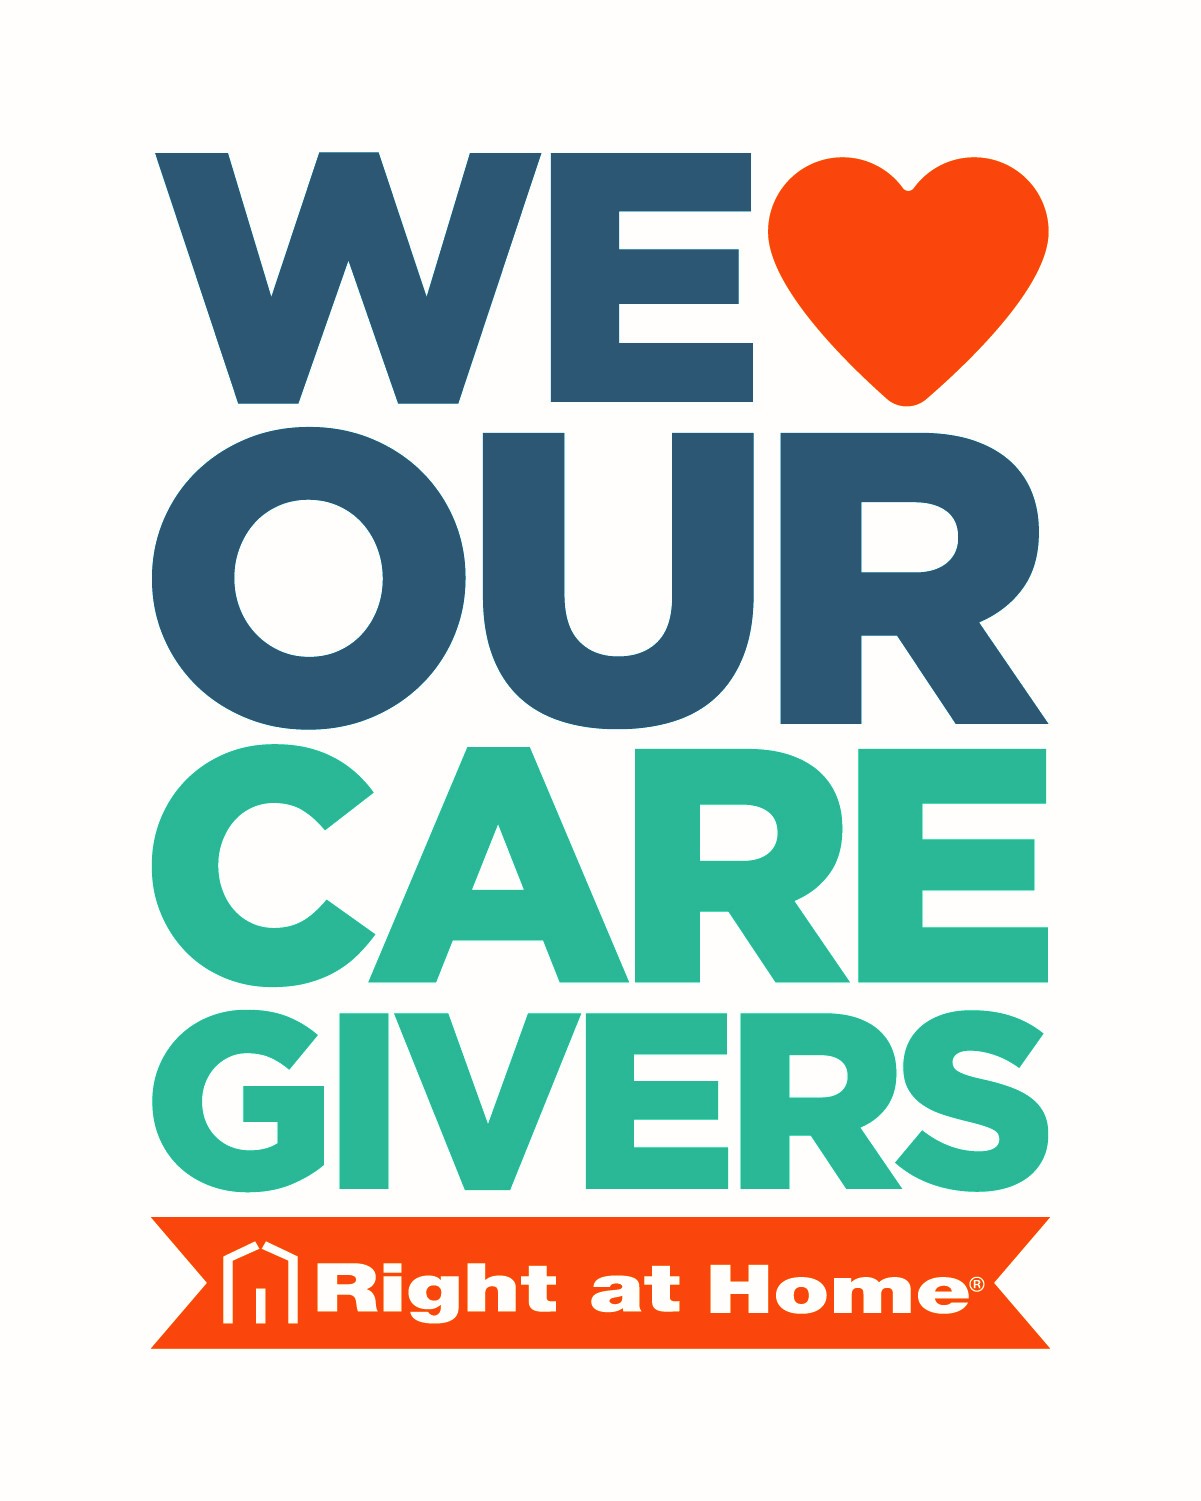 We Love Our Caregivers image